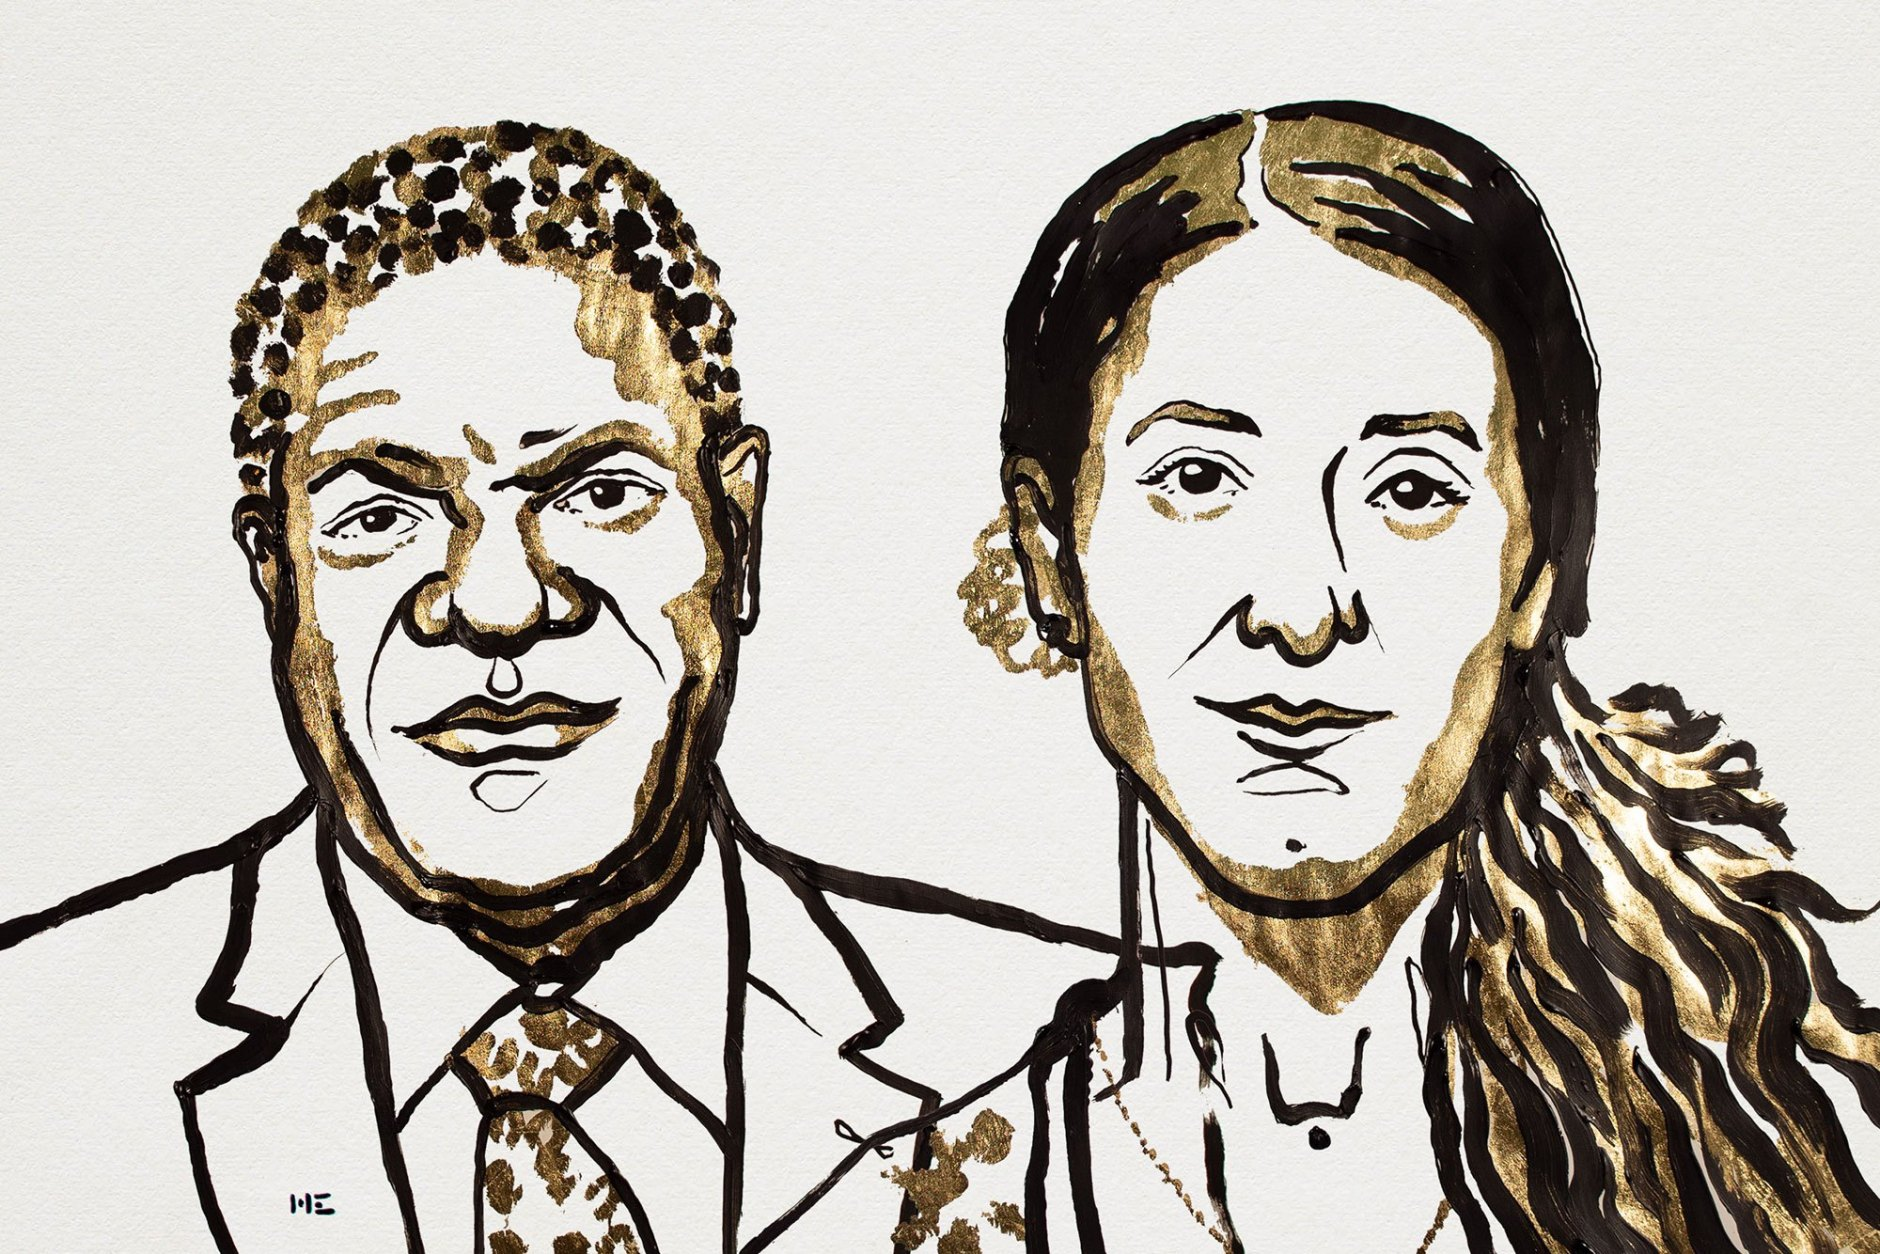 Denis Mukwege and Nadia Murad, 2018 Nobel Peace Prize Laureates